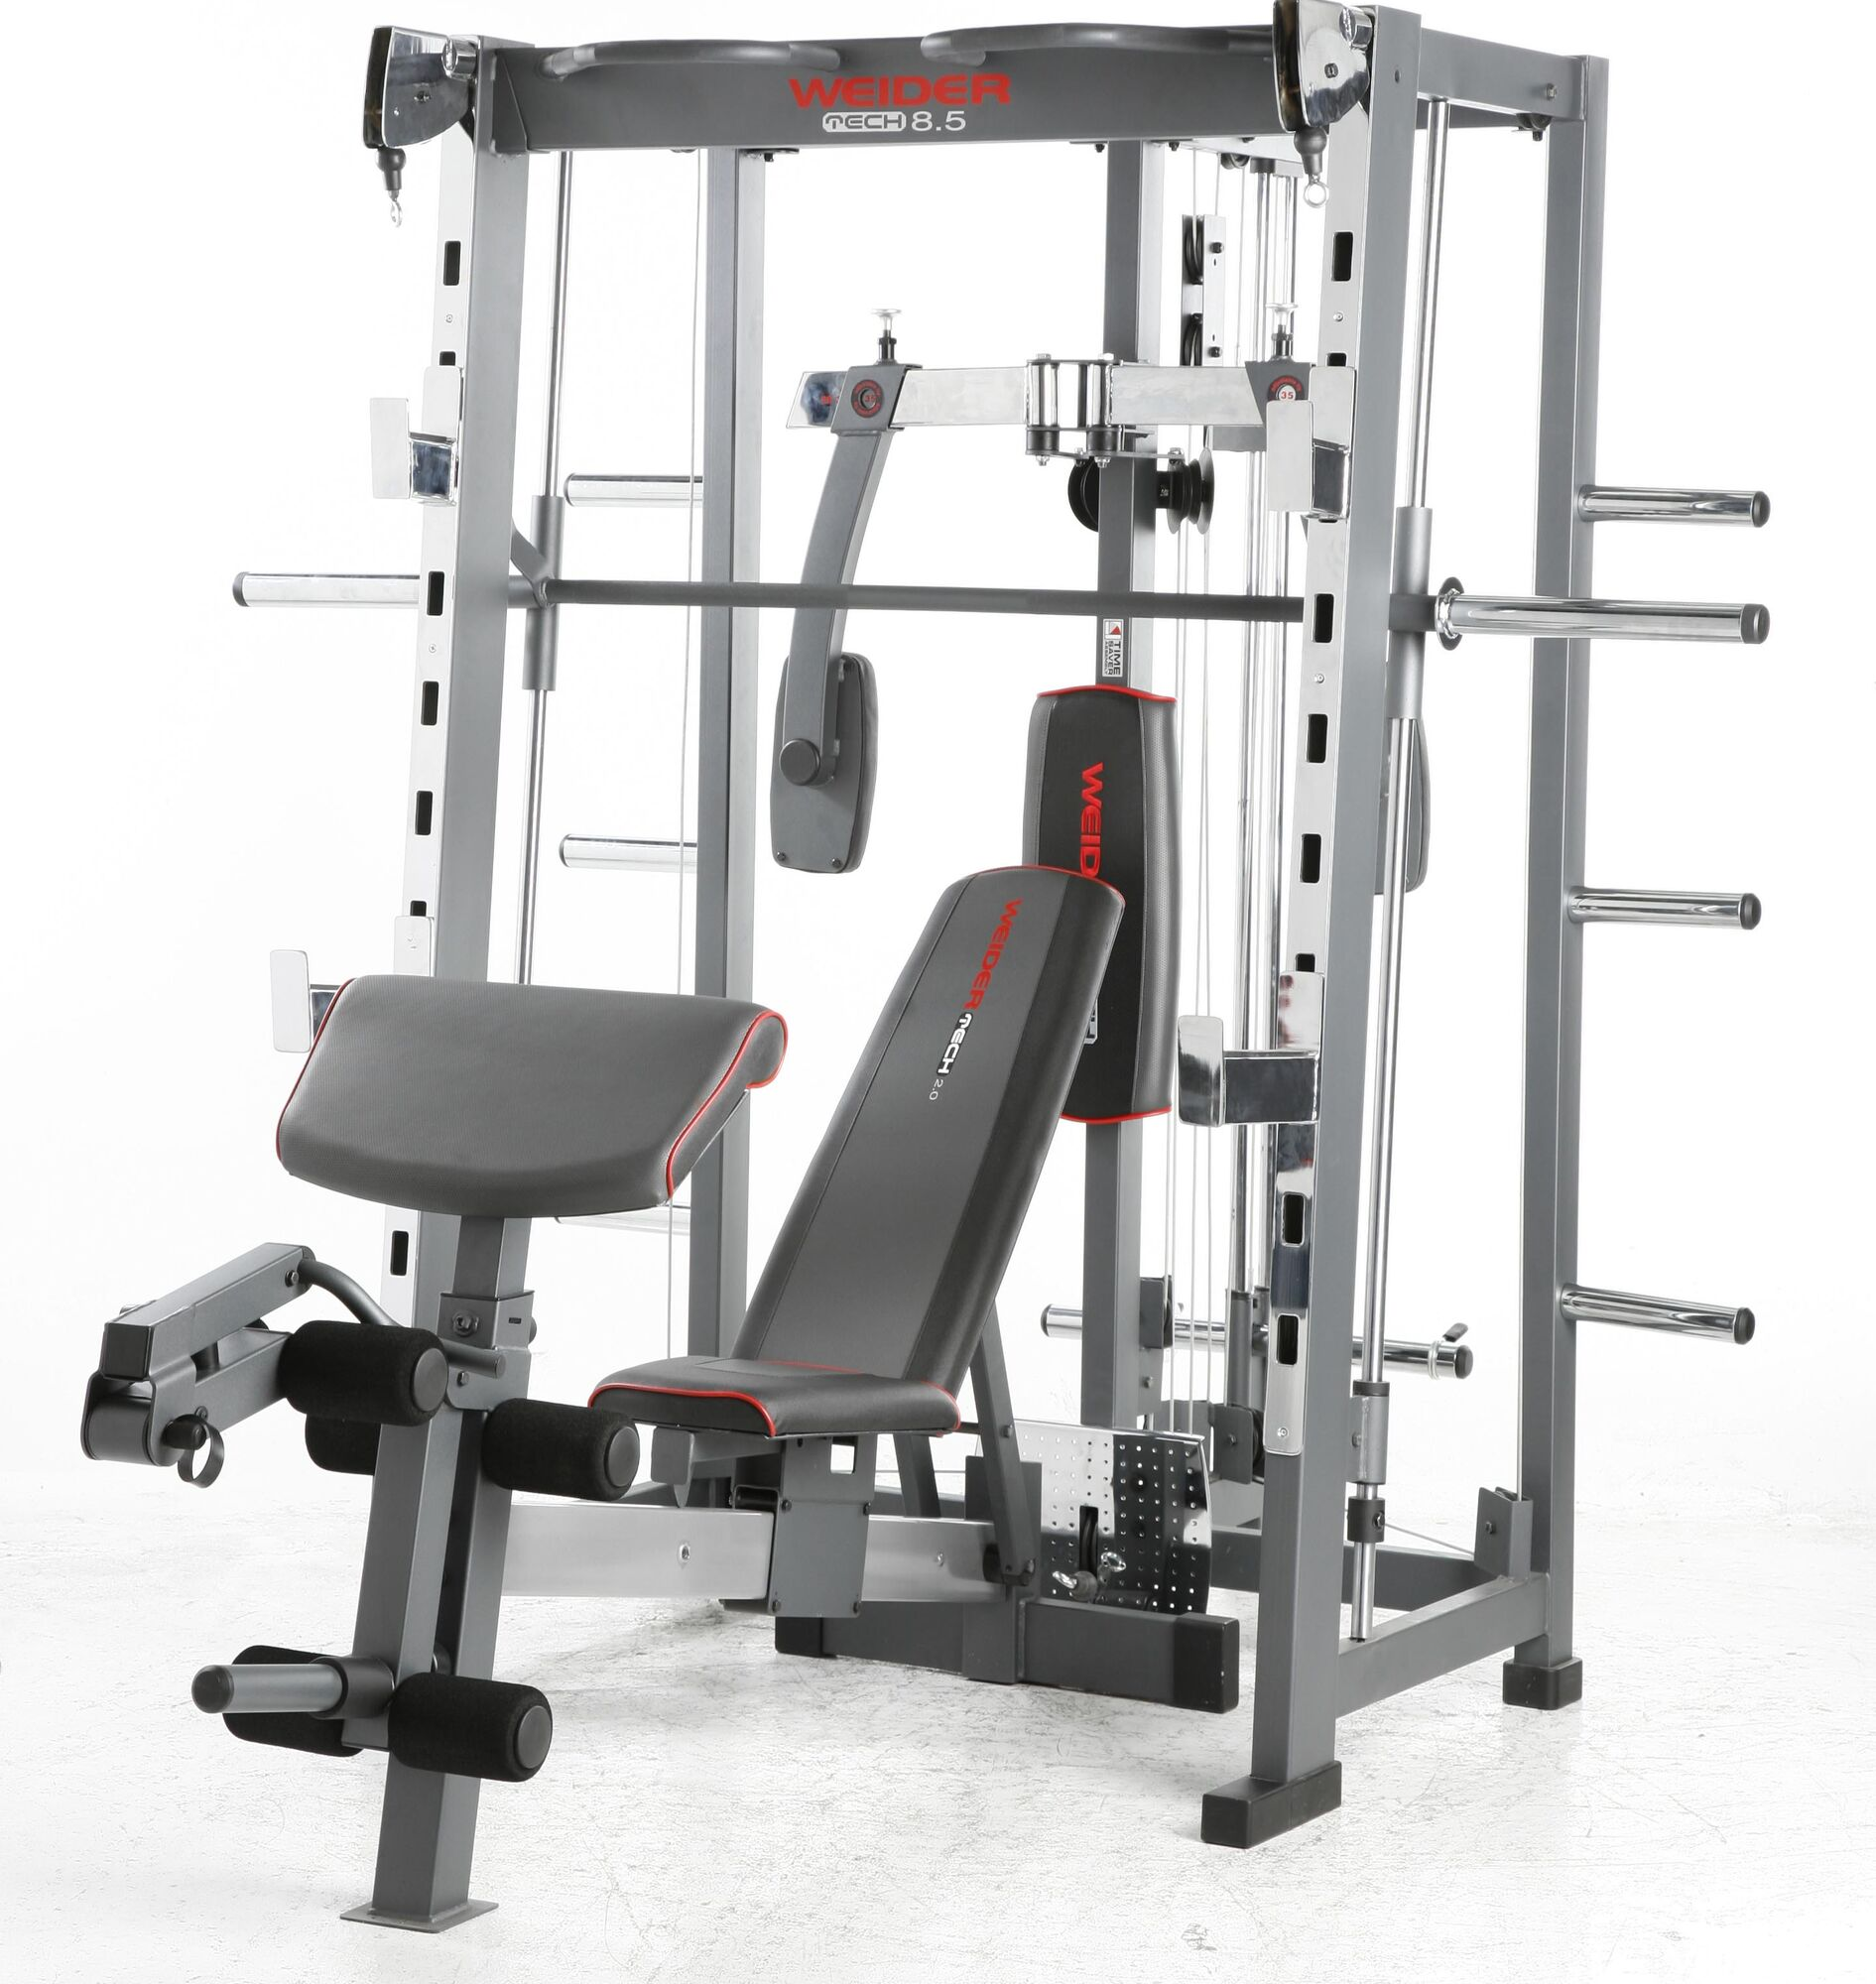 Weider fitness machines benches utility